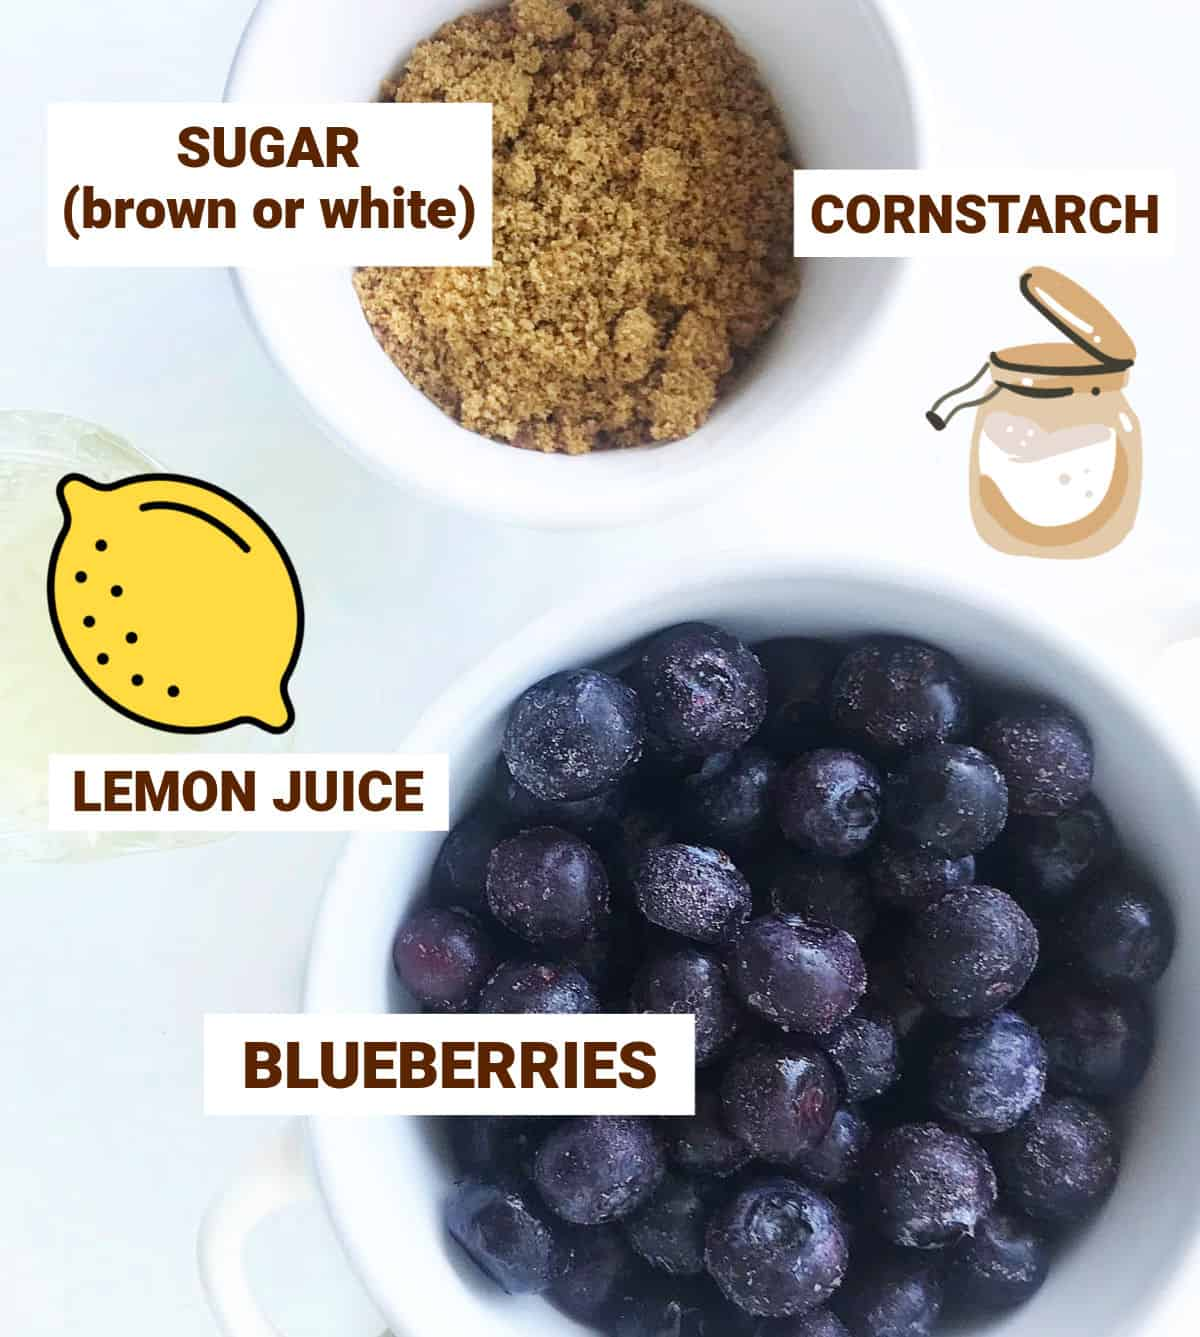 White bowls and graphics with sugar and blueberries, jar with juice, image with text